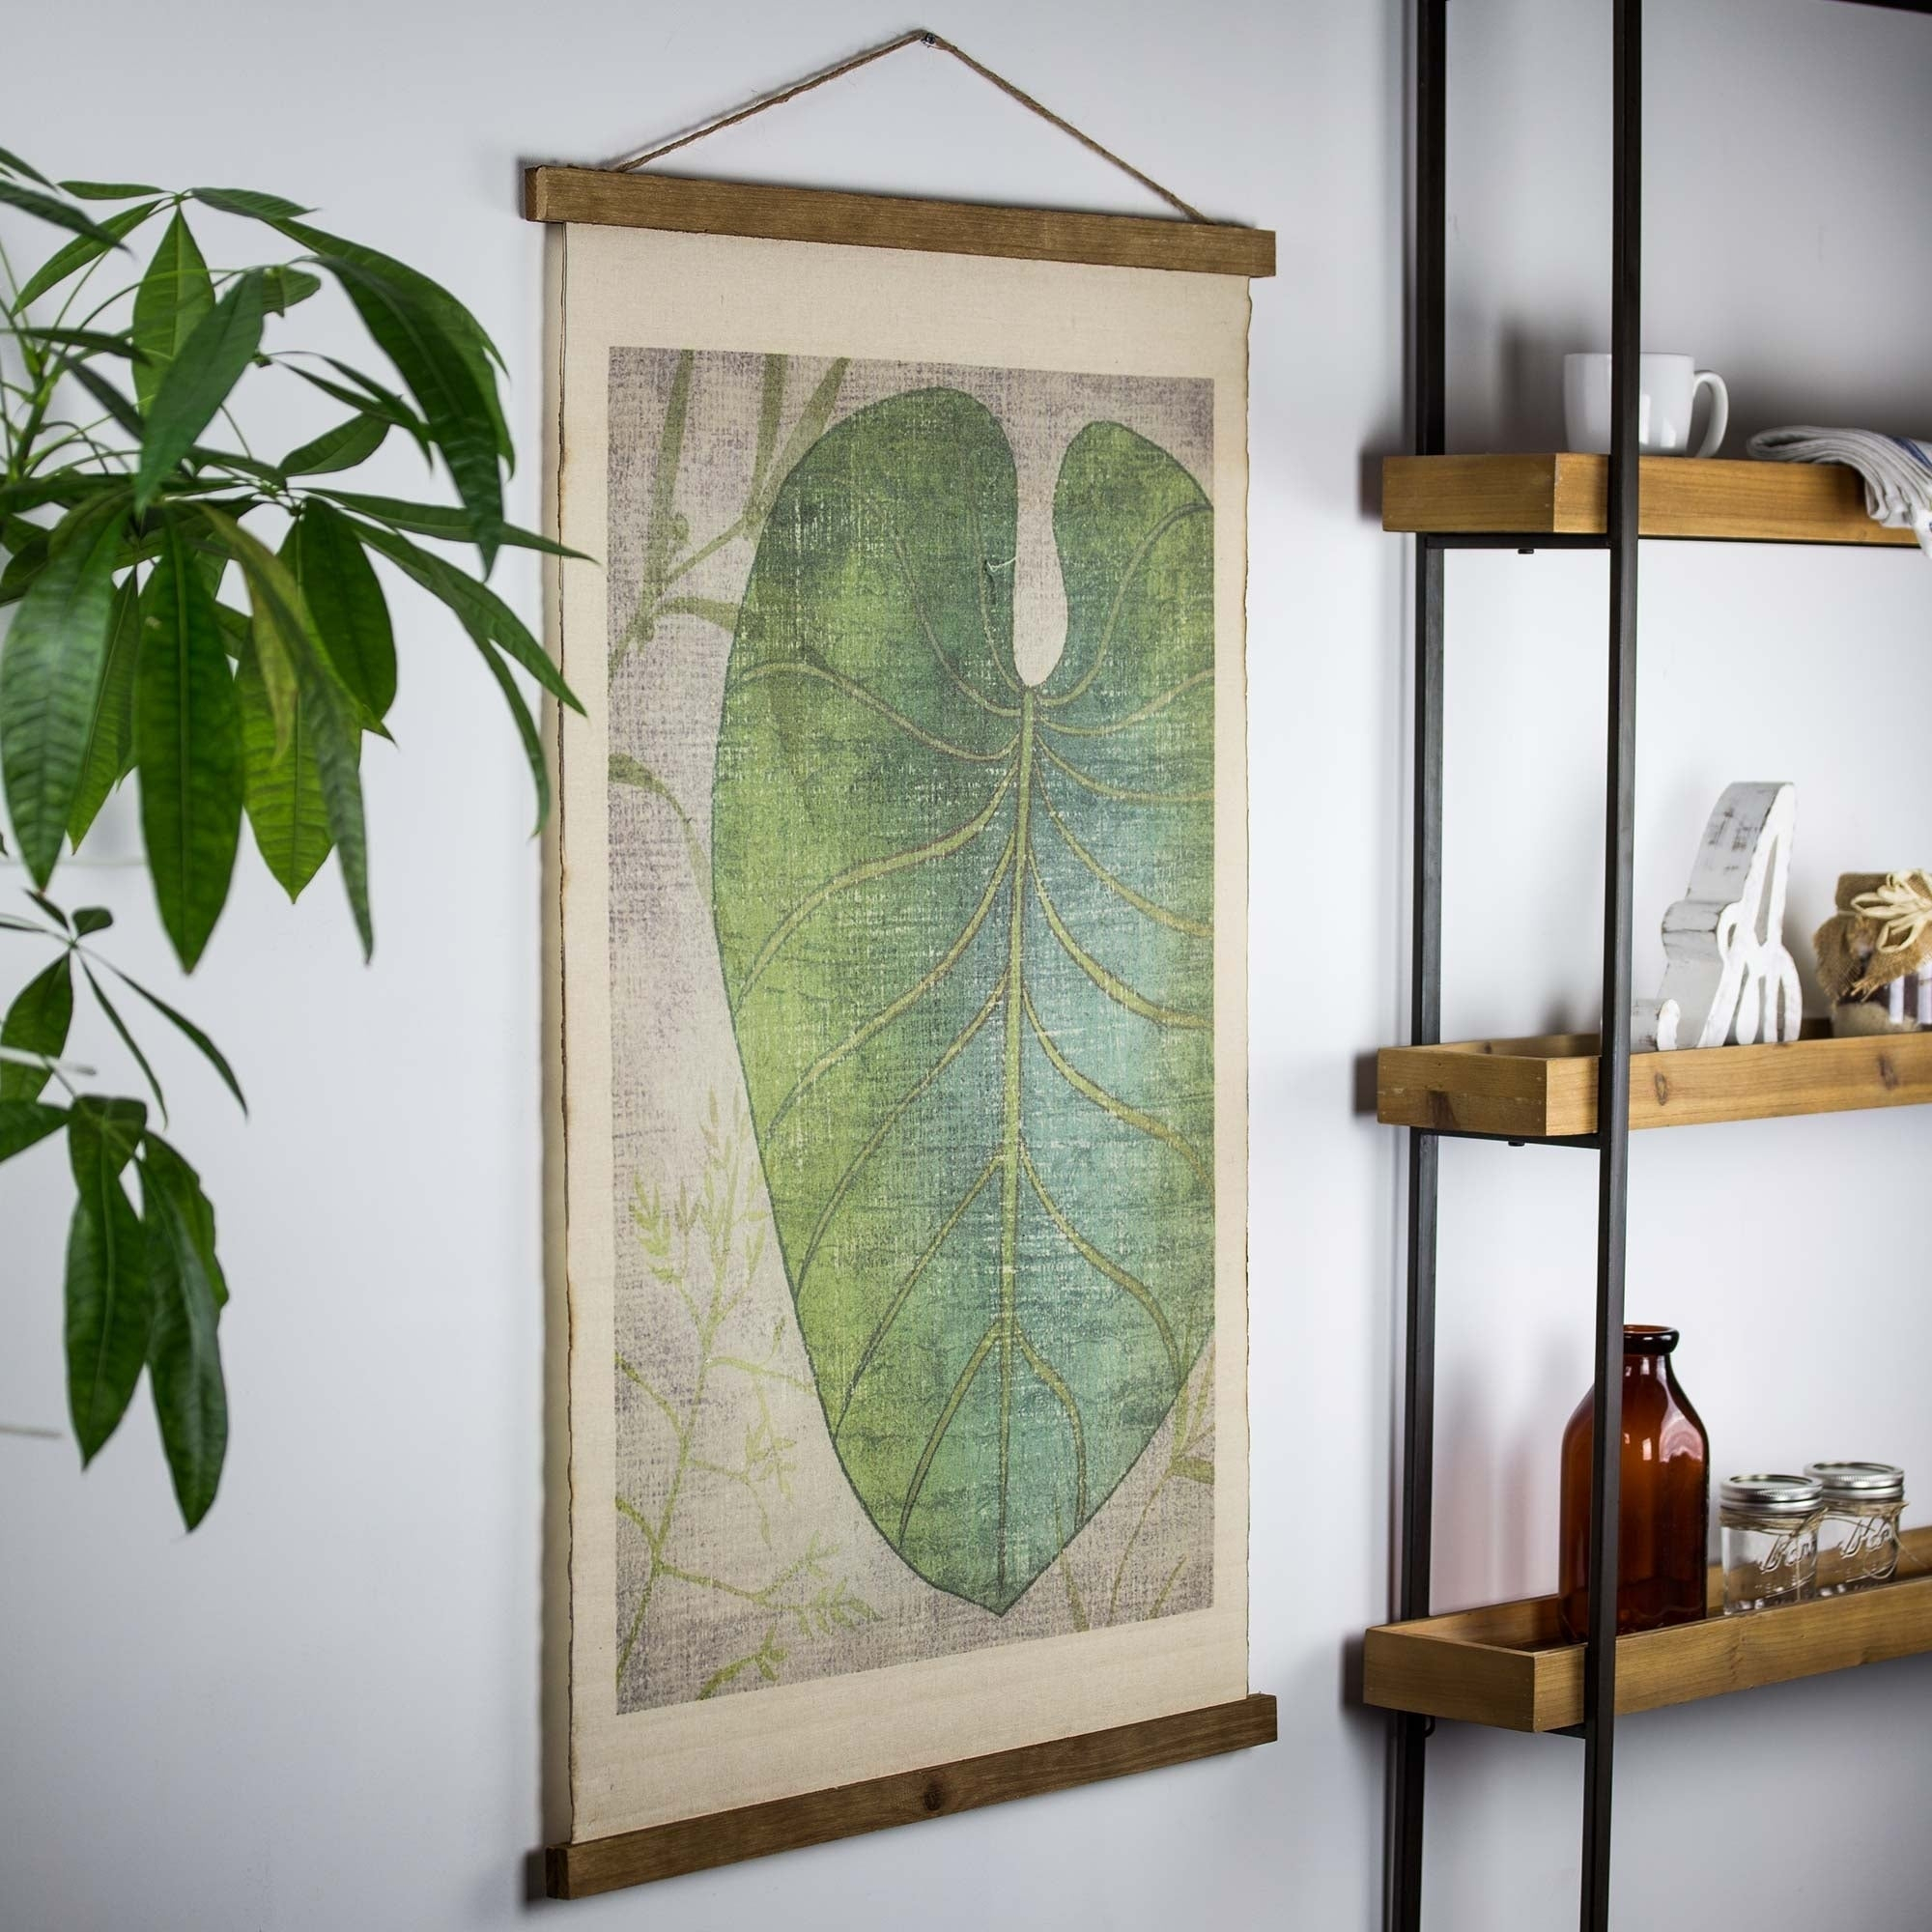 Newest Shop American Art Decor Leaf Wall Scroll Tapestry With Rope – Free Throughout Scroll Leaf Wall Decor (Gallery 8 of 20)